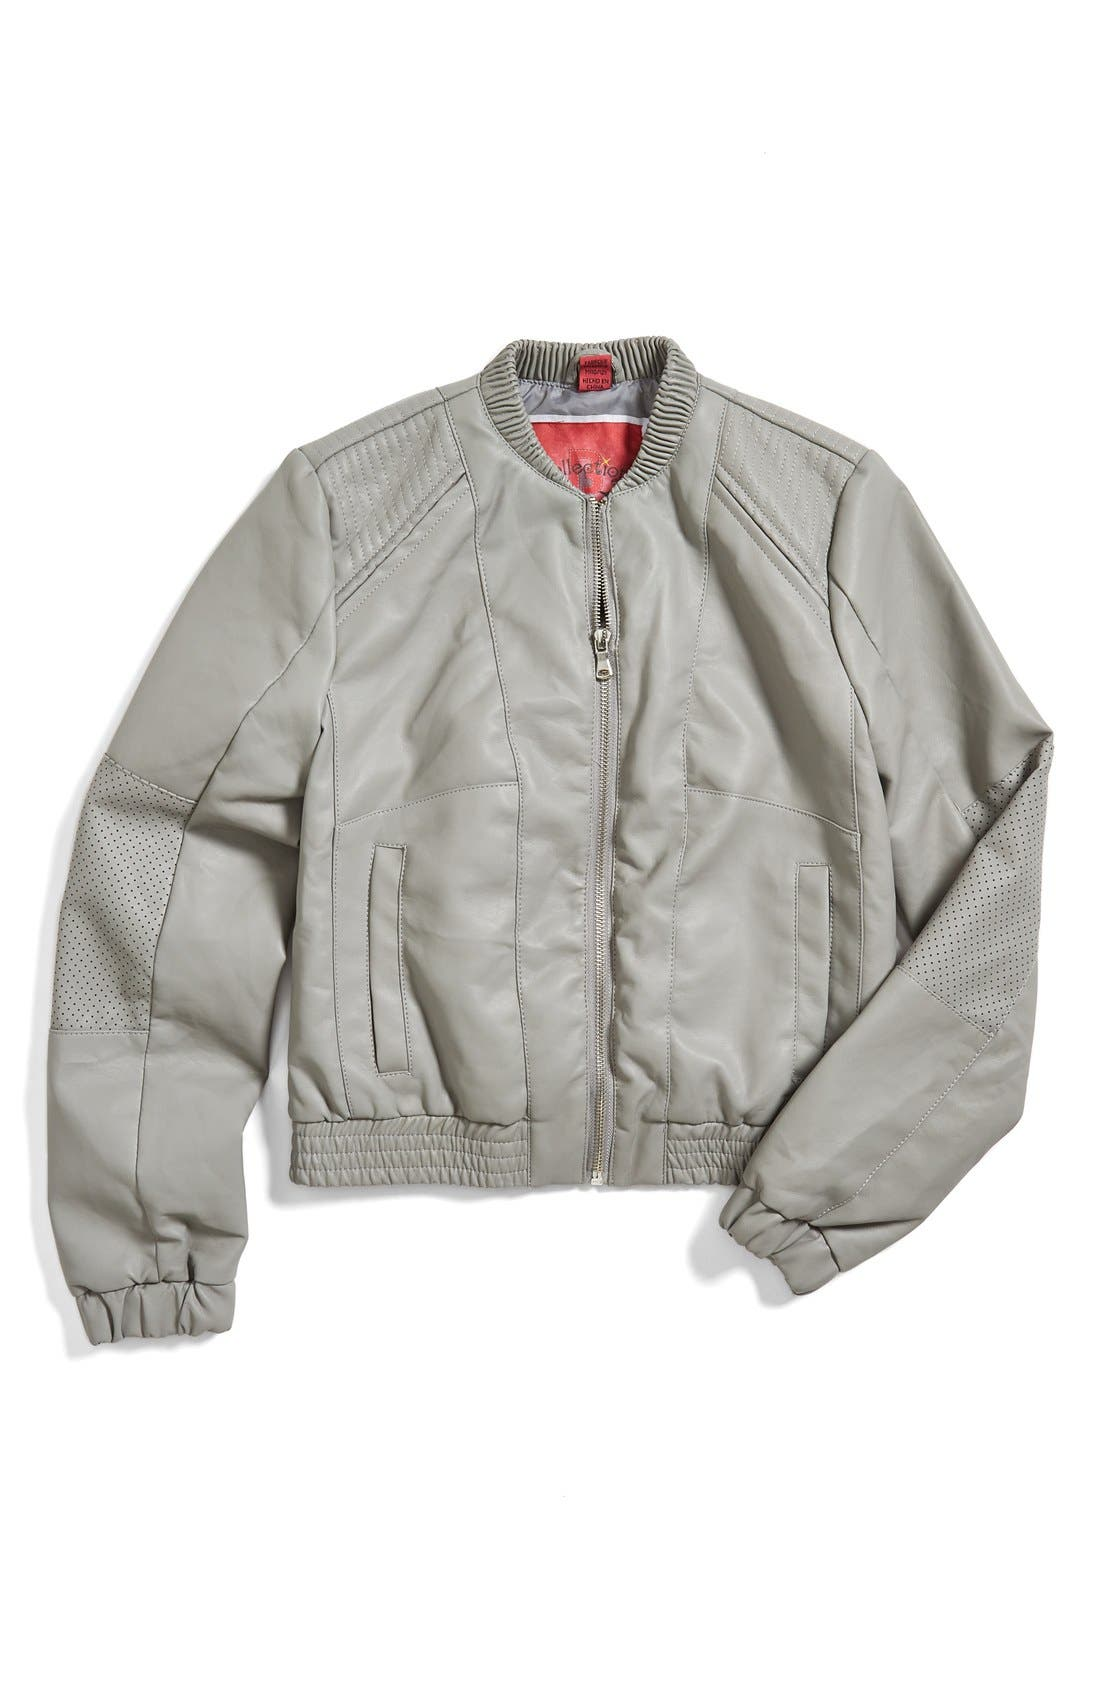 Alternate Image 1 Selected - Collection B Faux Leather Baseball Jacket (Big Girls)(Online Only)